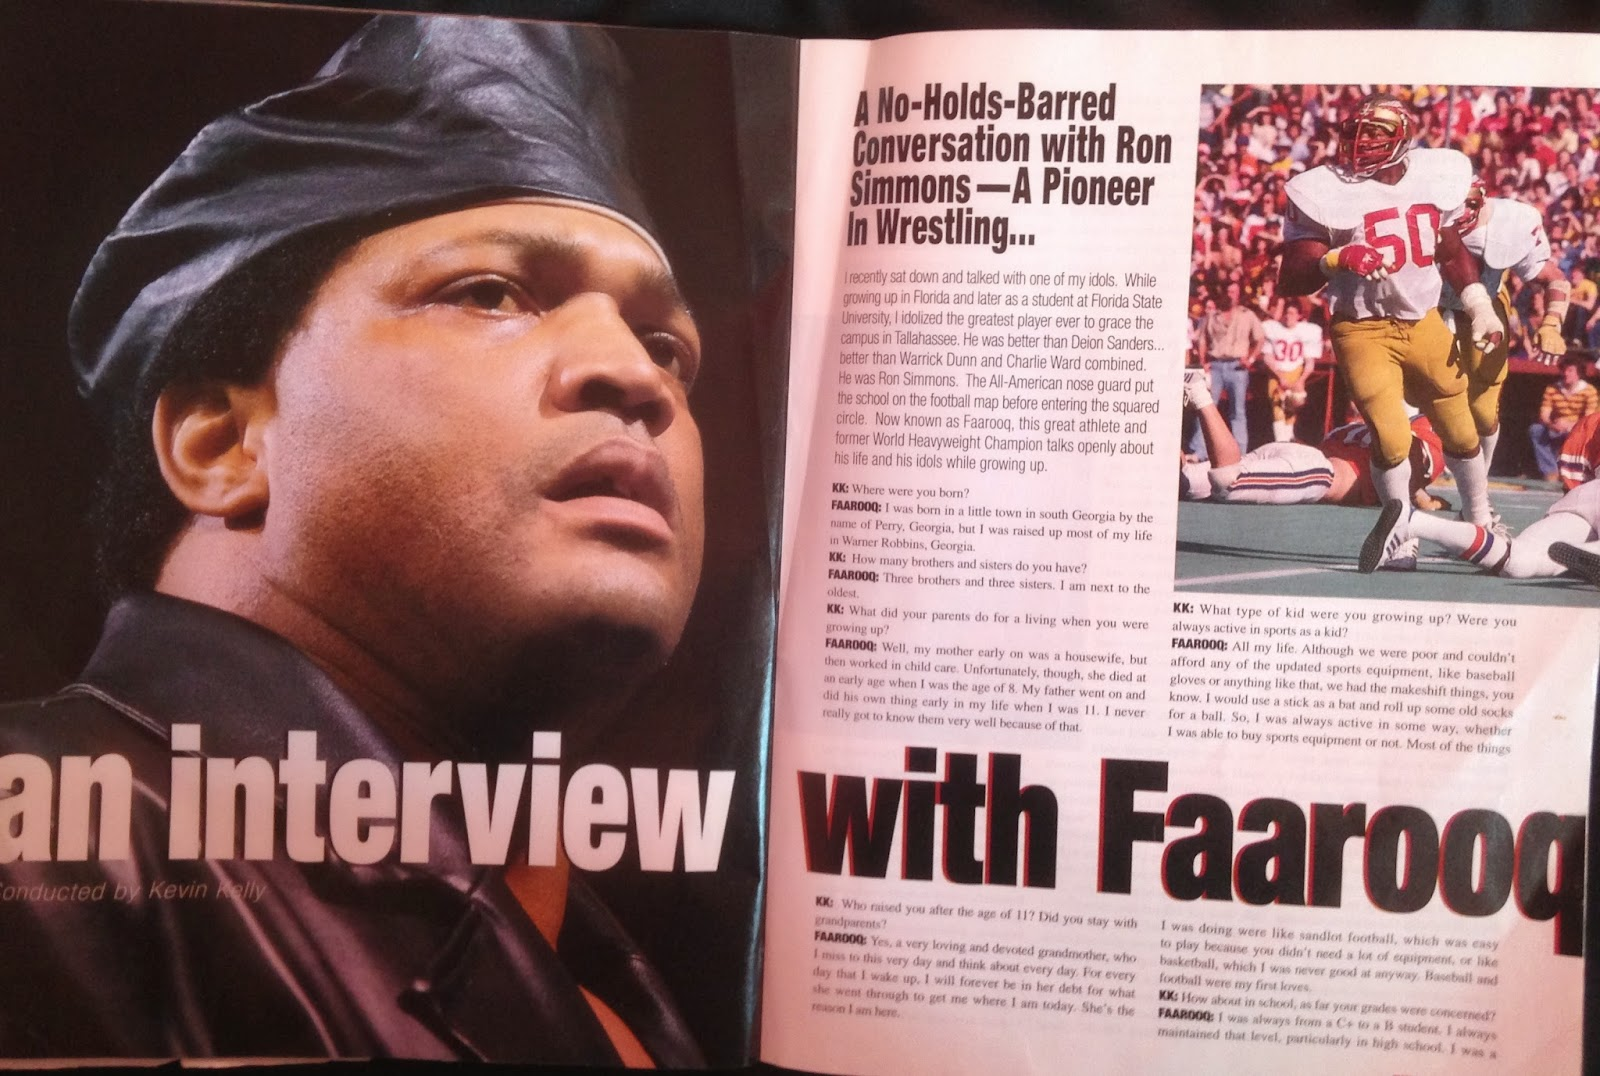 WWE: WWF RAW MAGAZINE - January 1998 - An interview with Farooq